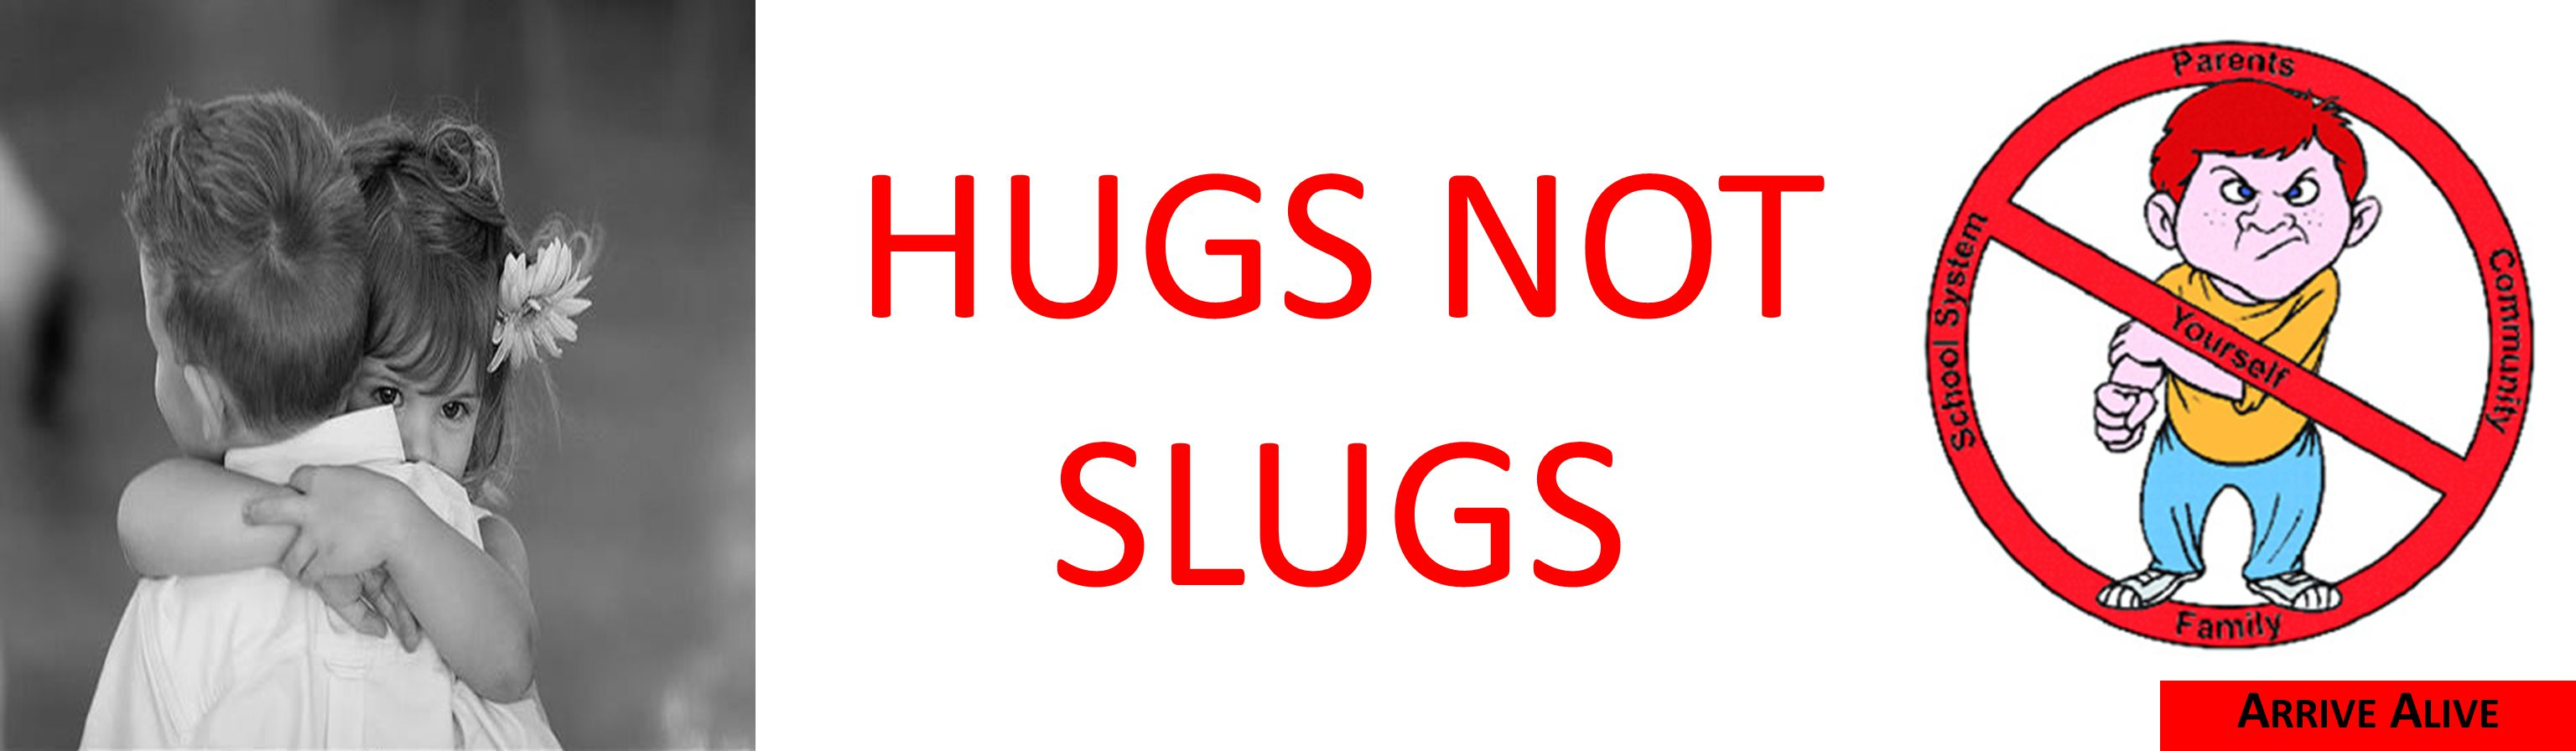 HUGS NOT SLUGS A RRIVE A LIVE